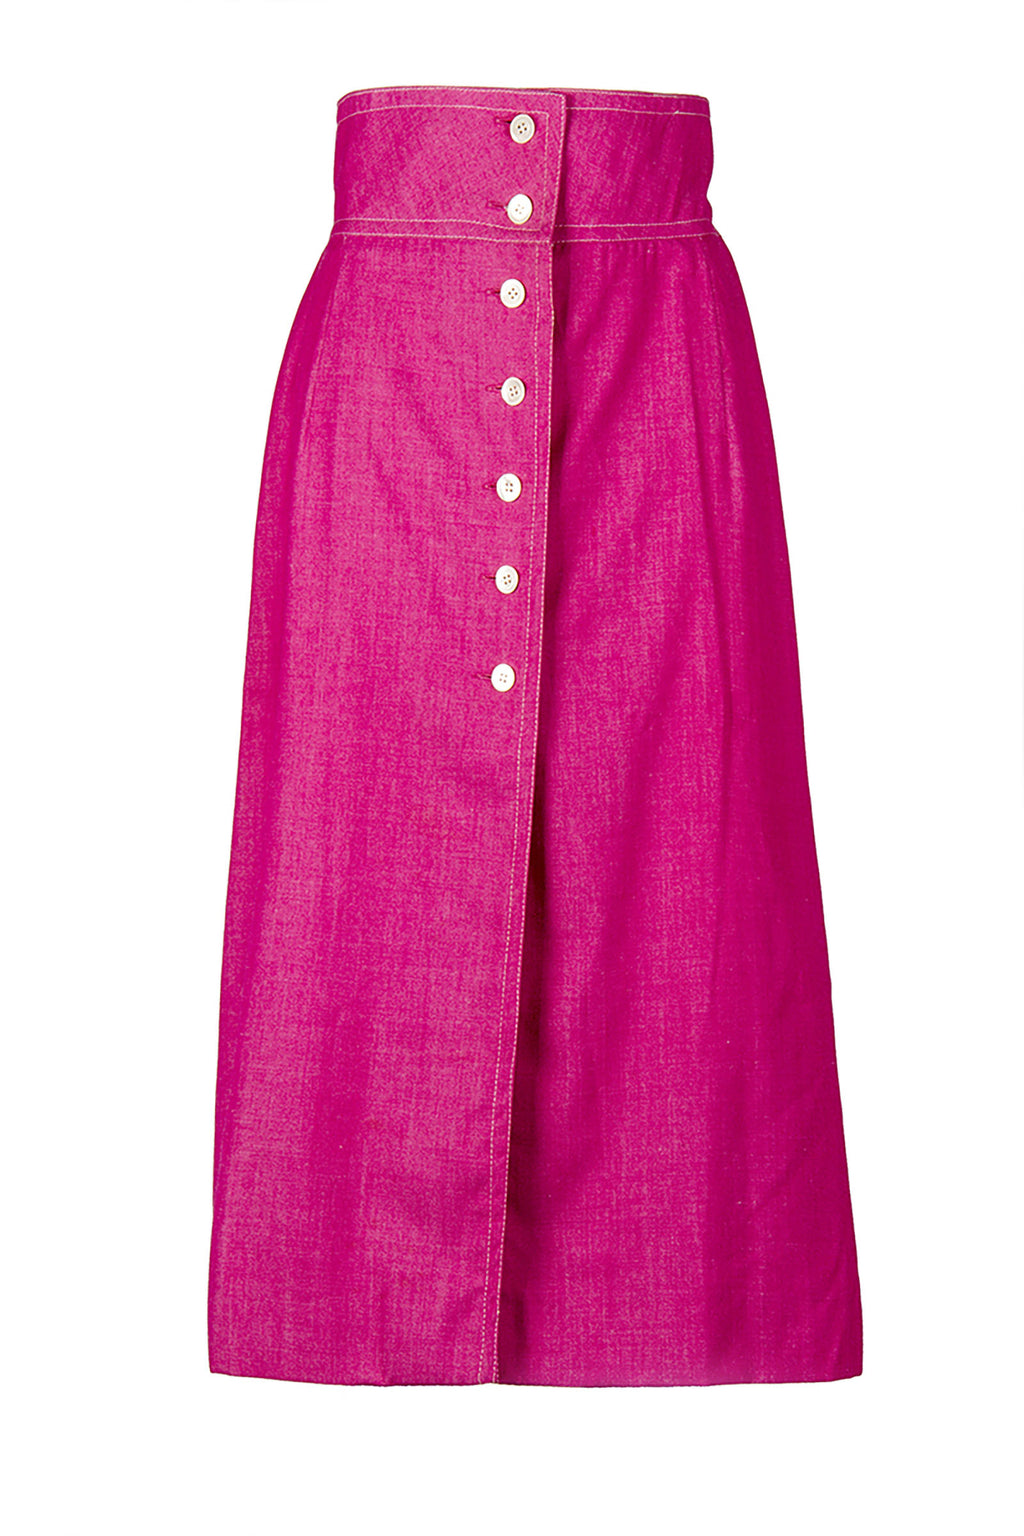 Vintage Hot Pink Button Up Skirt